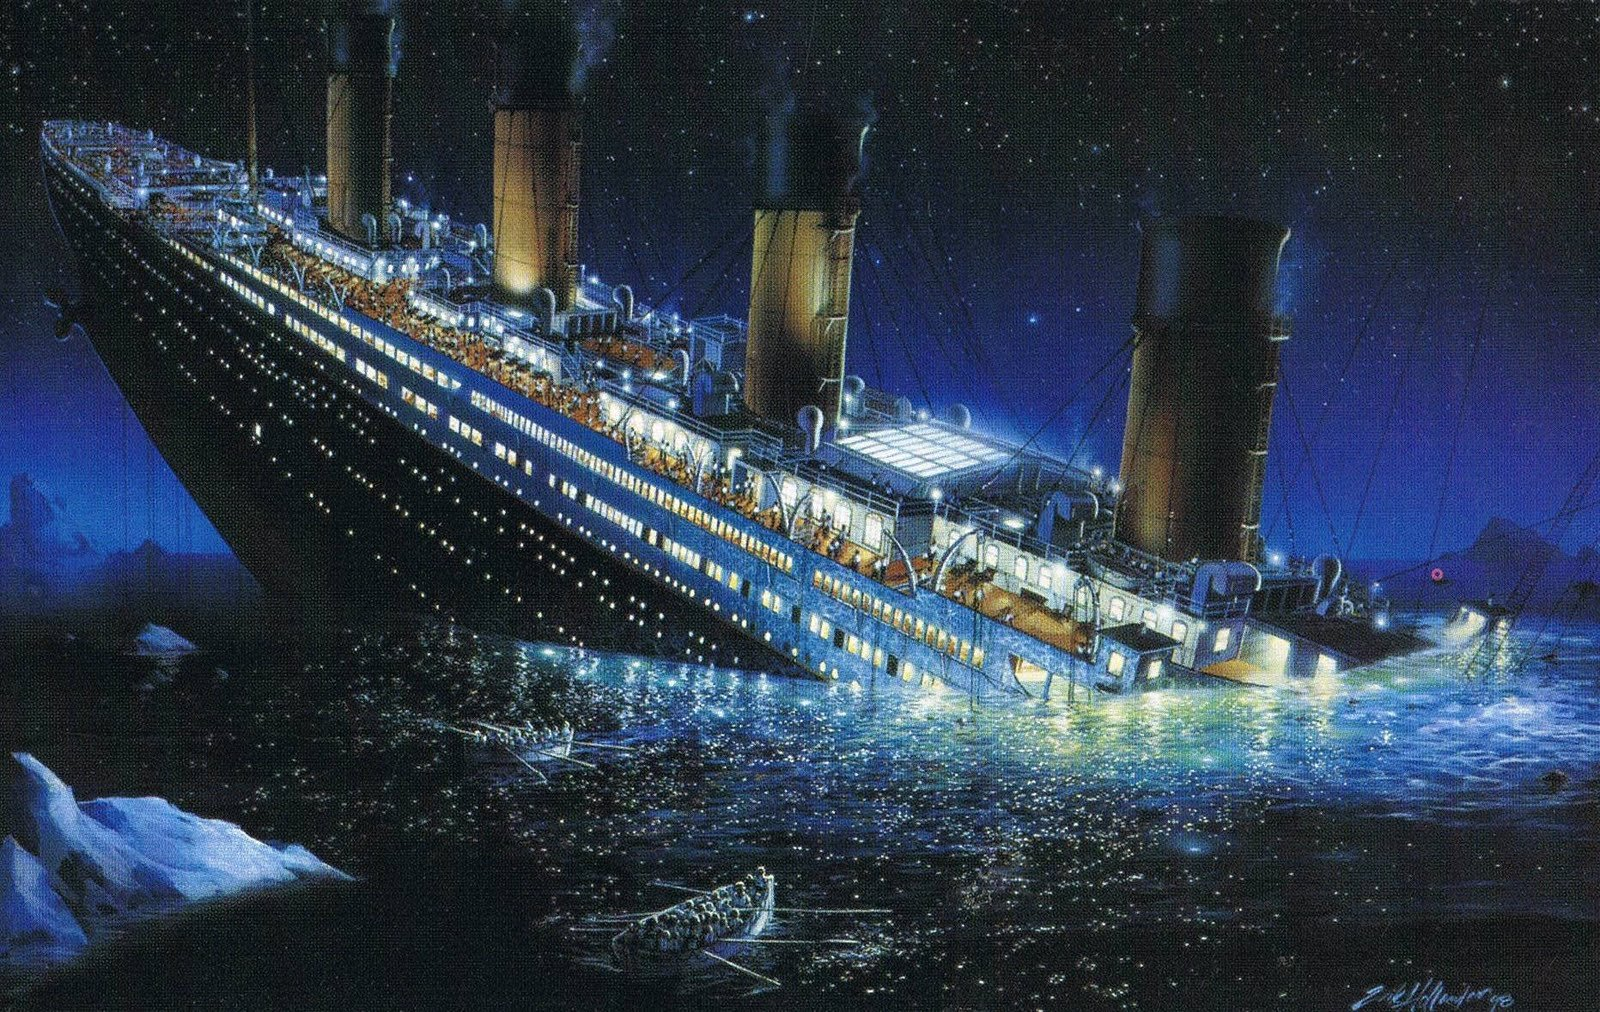 blockchain and the Titanic